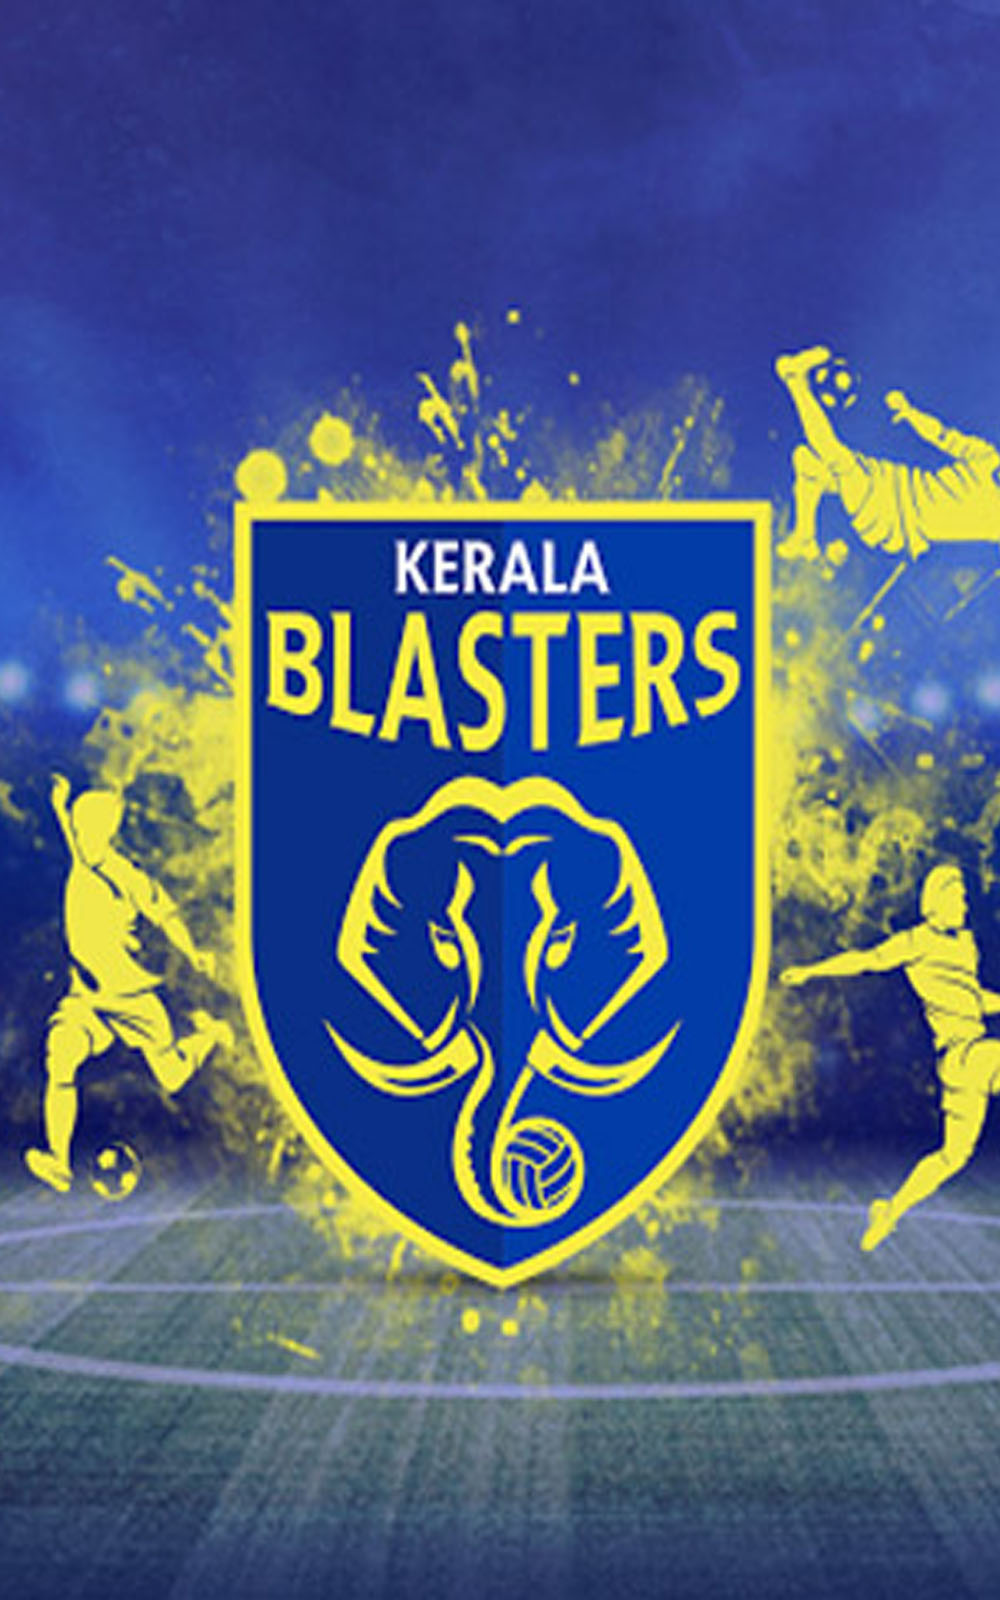 Kerala Blasters - Download Free HD Mobile Wallpapers